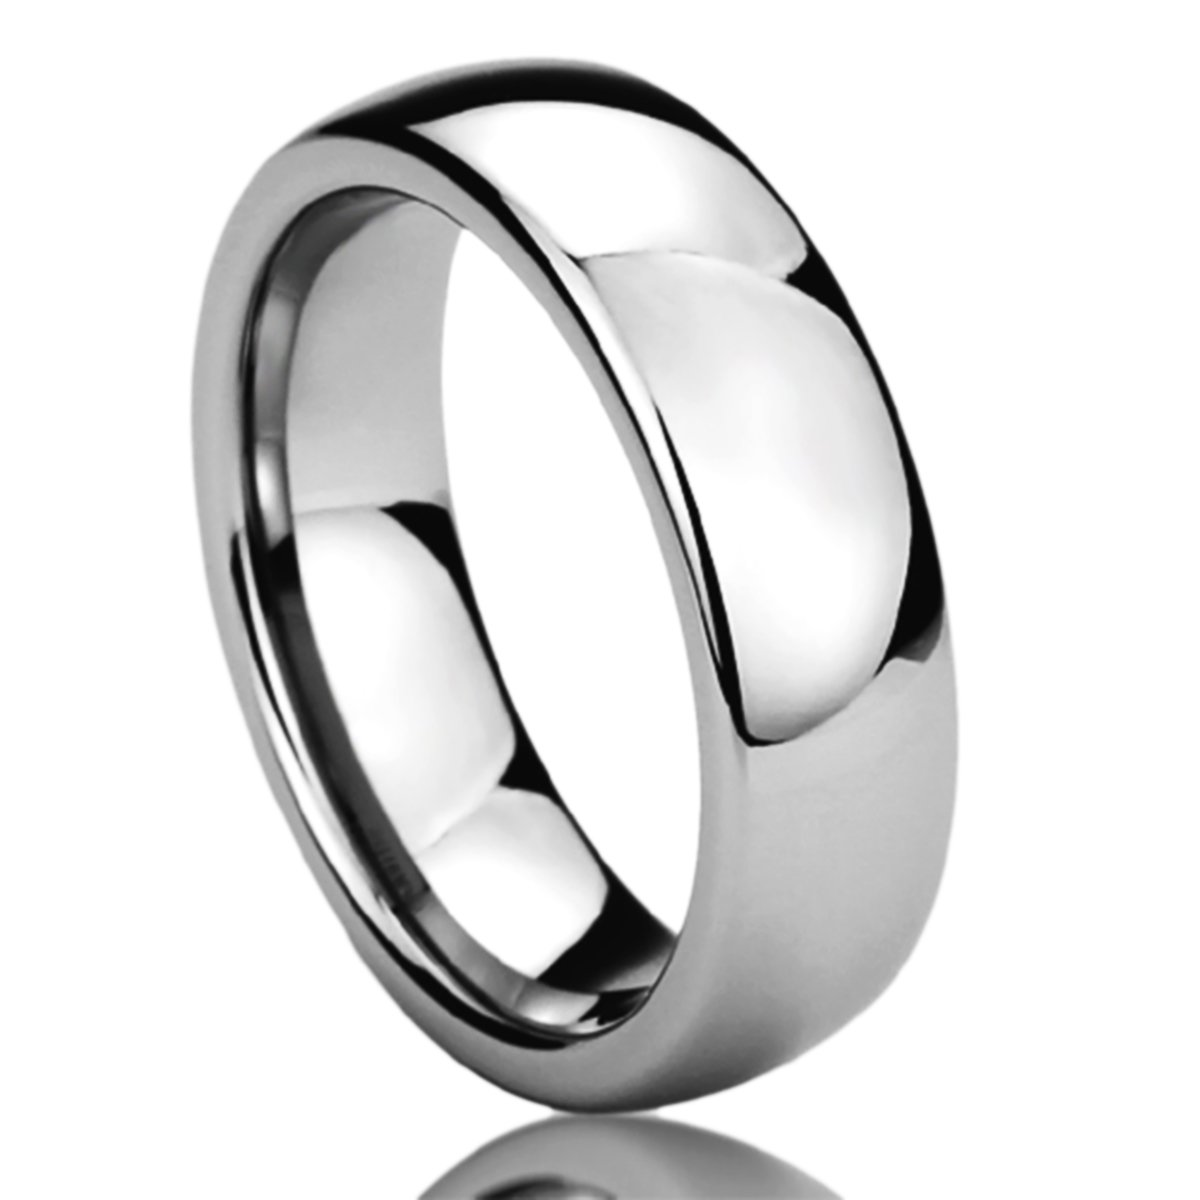 6MM Stainless Steel Mens Womens Rings High Polished Classy Domed Comfort Fit Wedding Bands SZ: 12.5